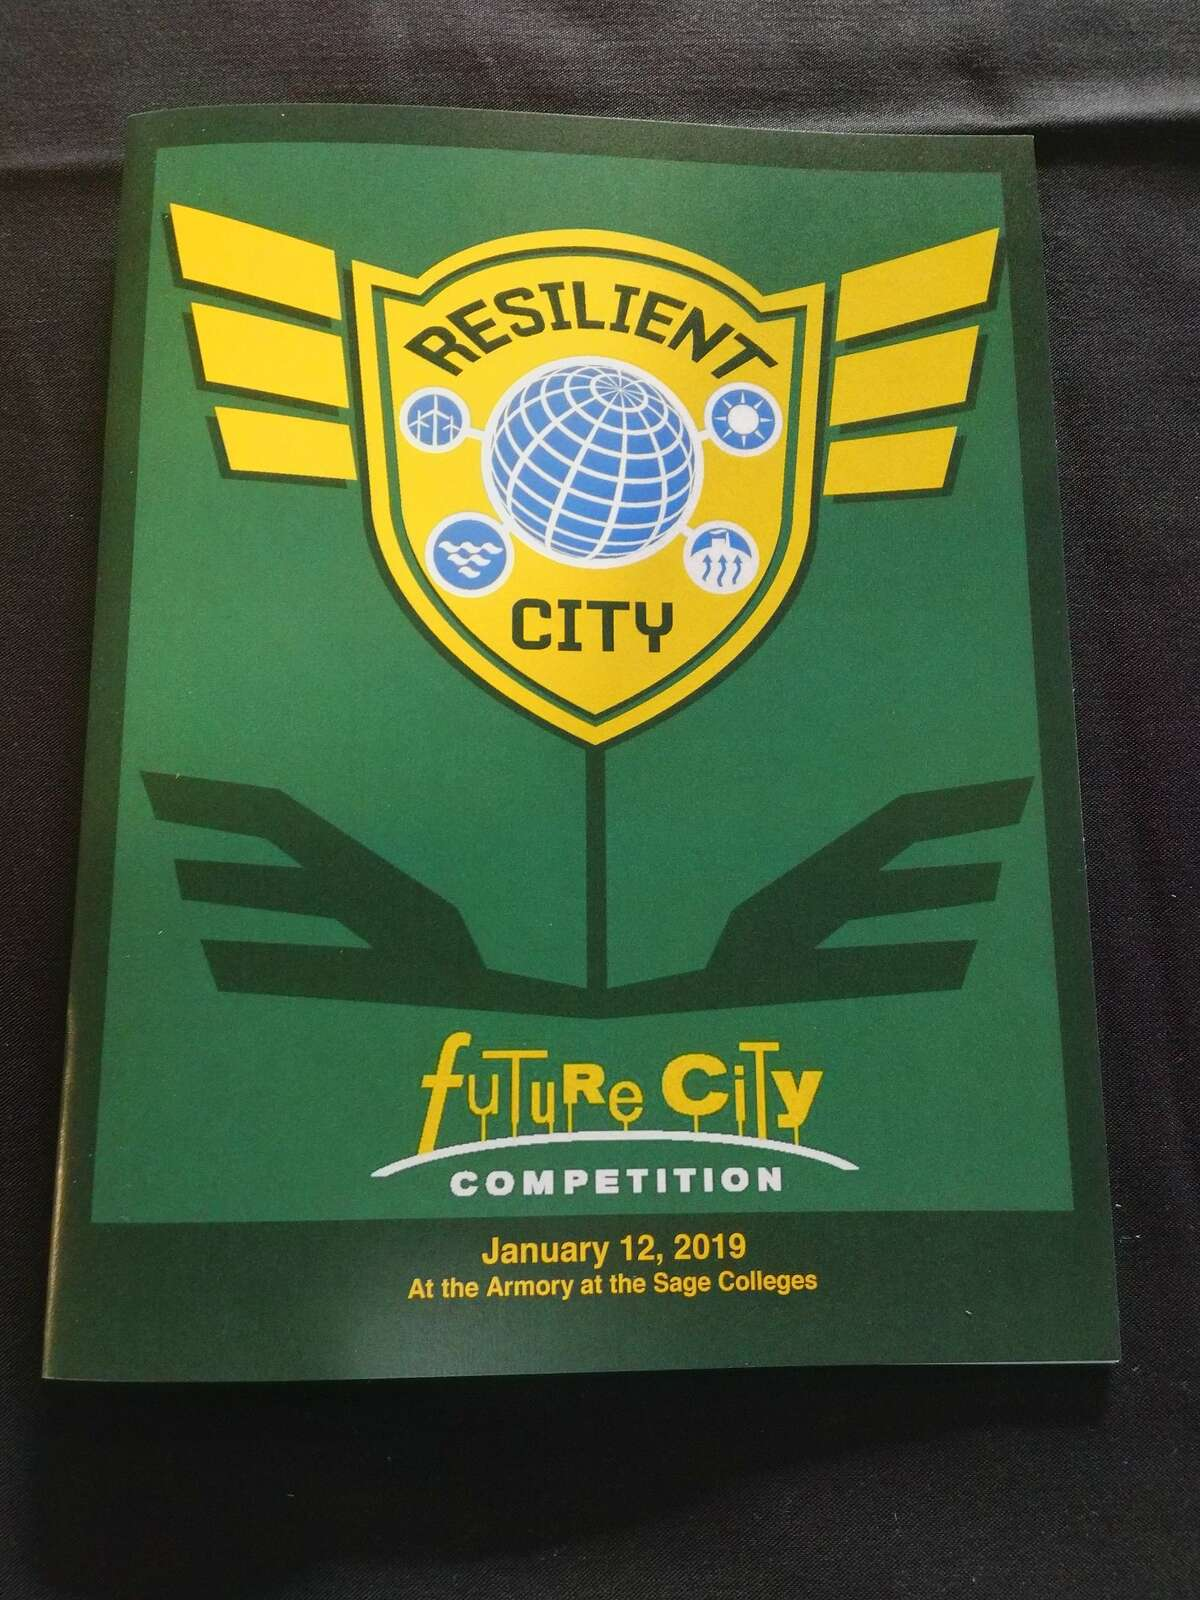 The Future City competition held at the Armory at Sage College on Saturday Jan. 12, 2019, in Albany. (Photo provided)